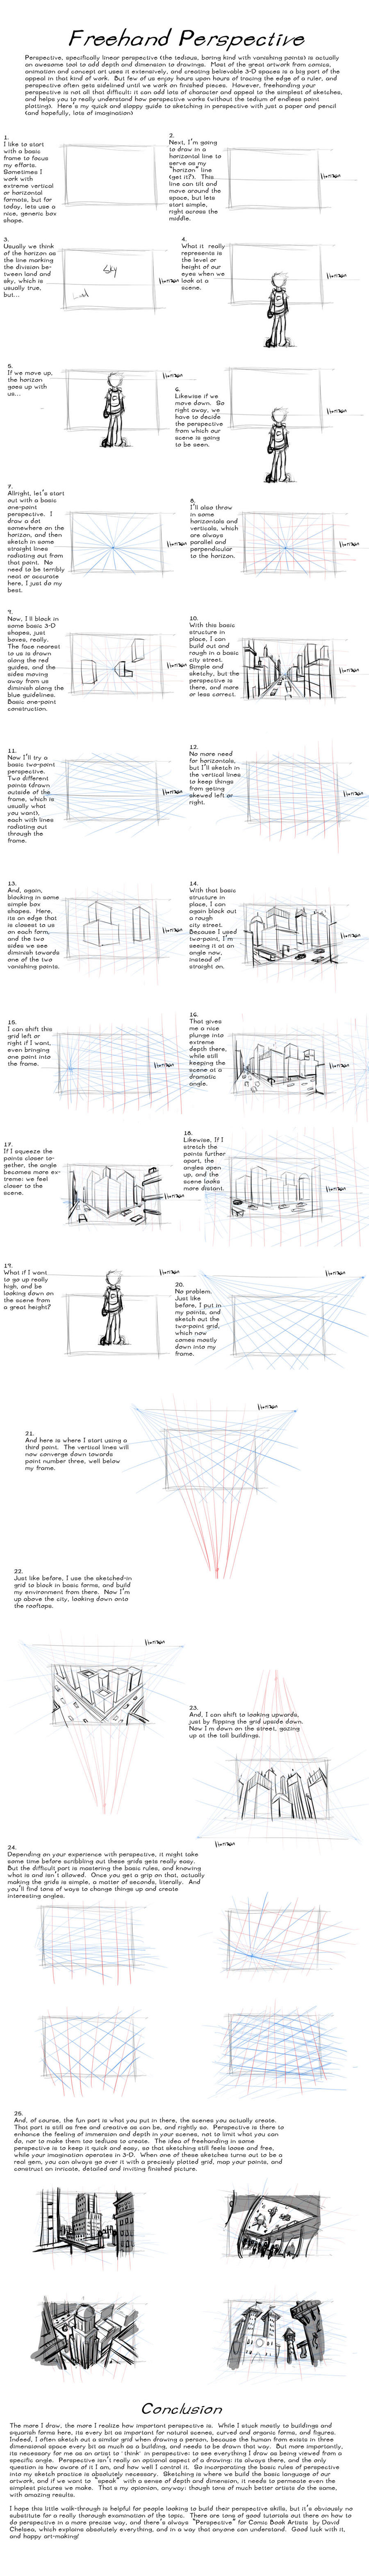 Freehand Perspective Drawing Tutorial